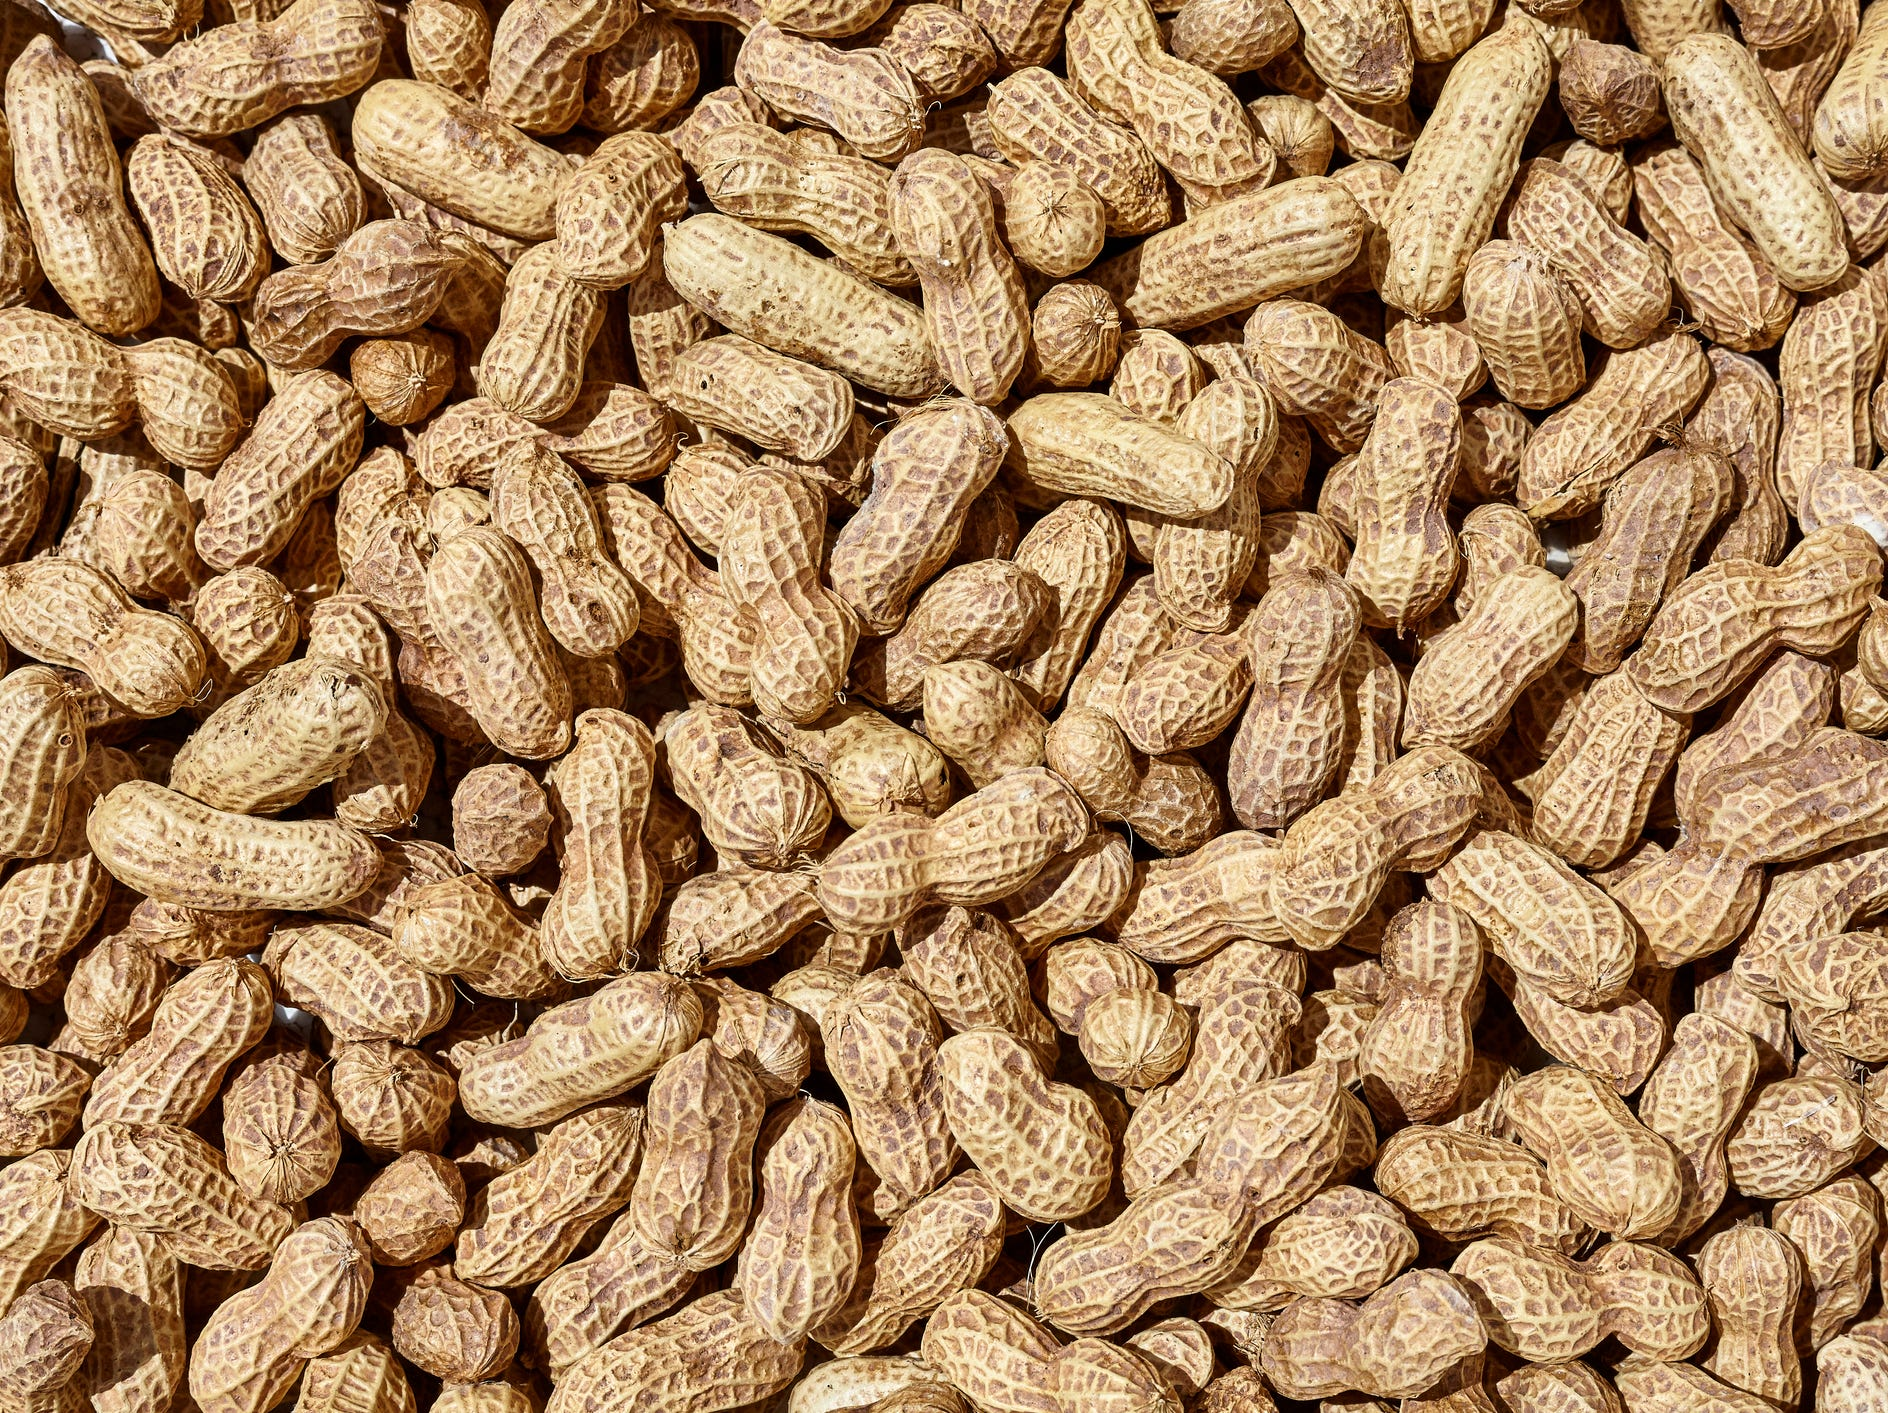 'Breakthrough' peanut allergy drug ready for FDA review offers hope for those who suffer